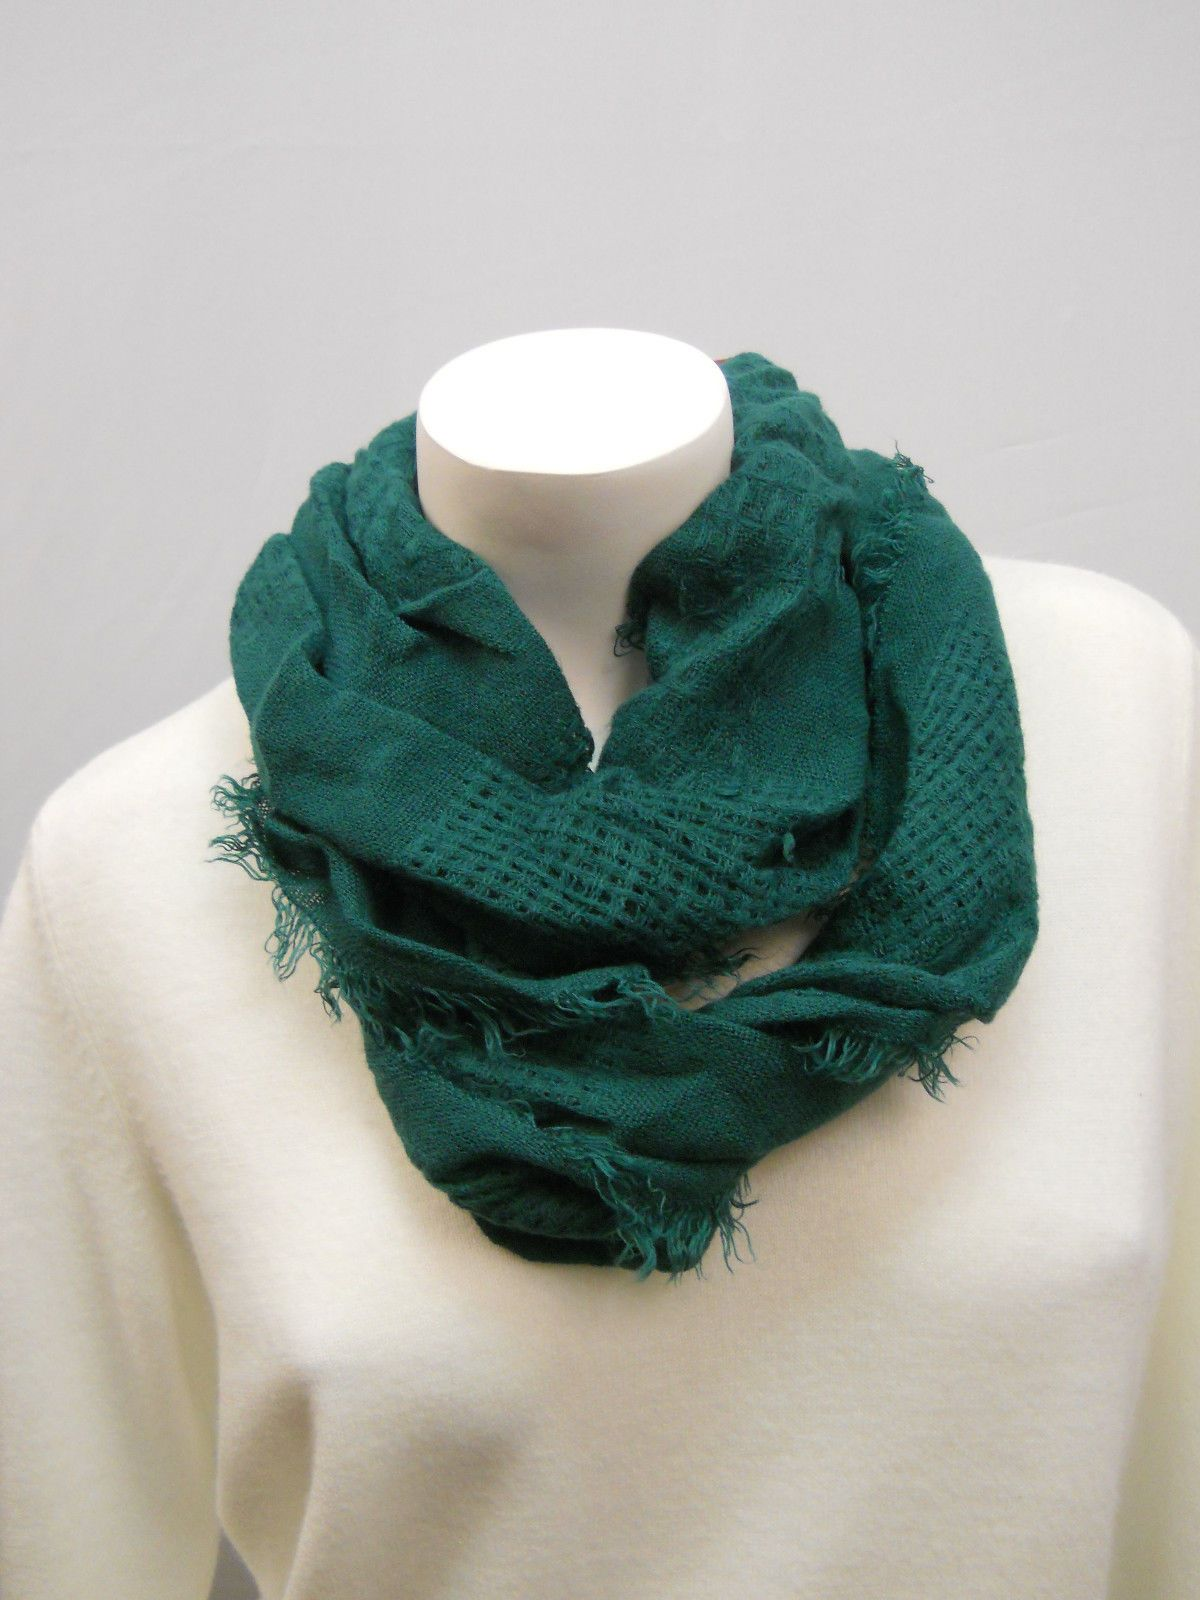 Find a Women's Infinity Scarf or Men's Infinity Scarf at Macy's. Macy's Presents: The Edit - A curated mix of fashion and inspiration Check It Out Free Shipping with $99 purchase + Free Store Pickup.